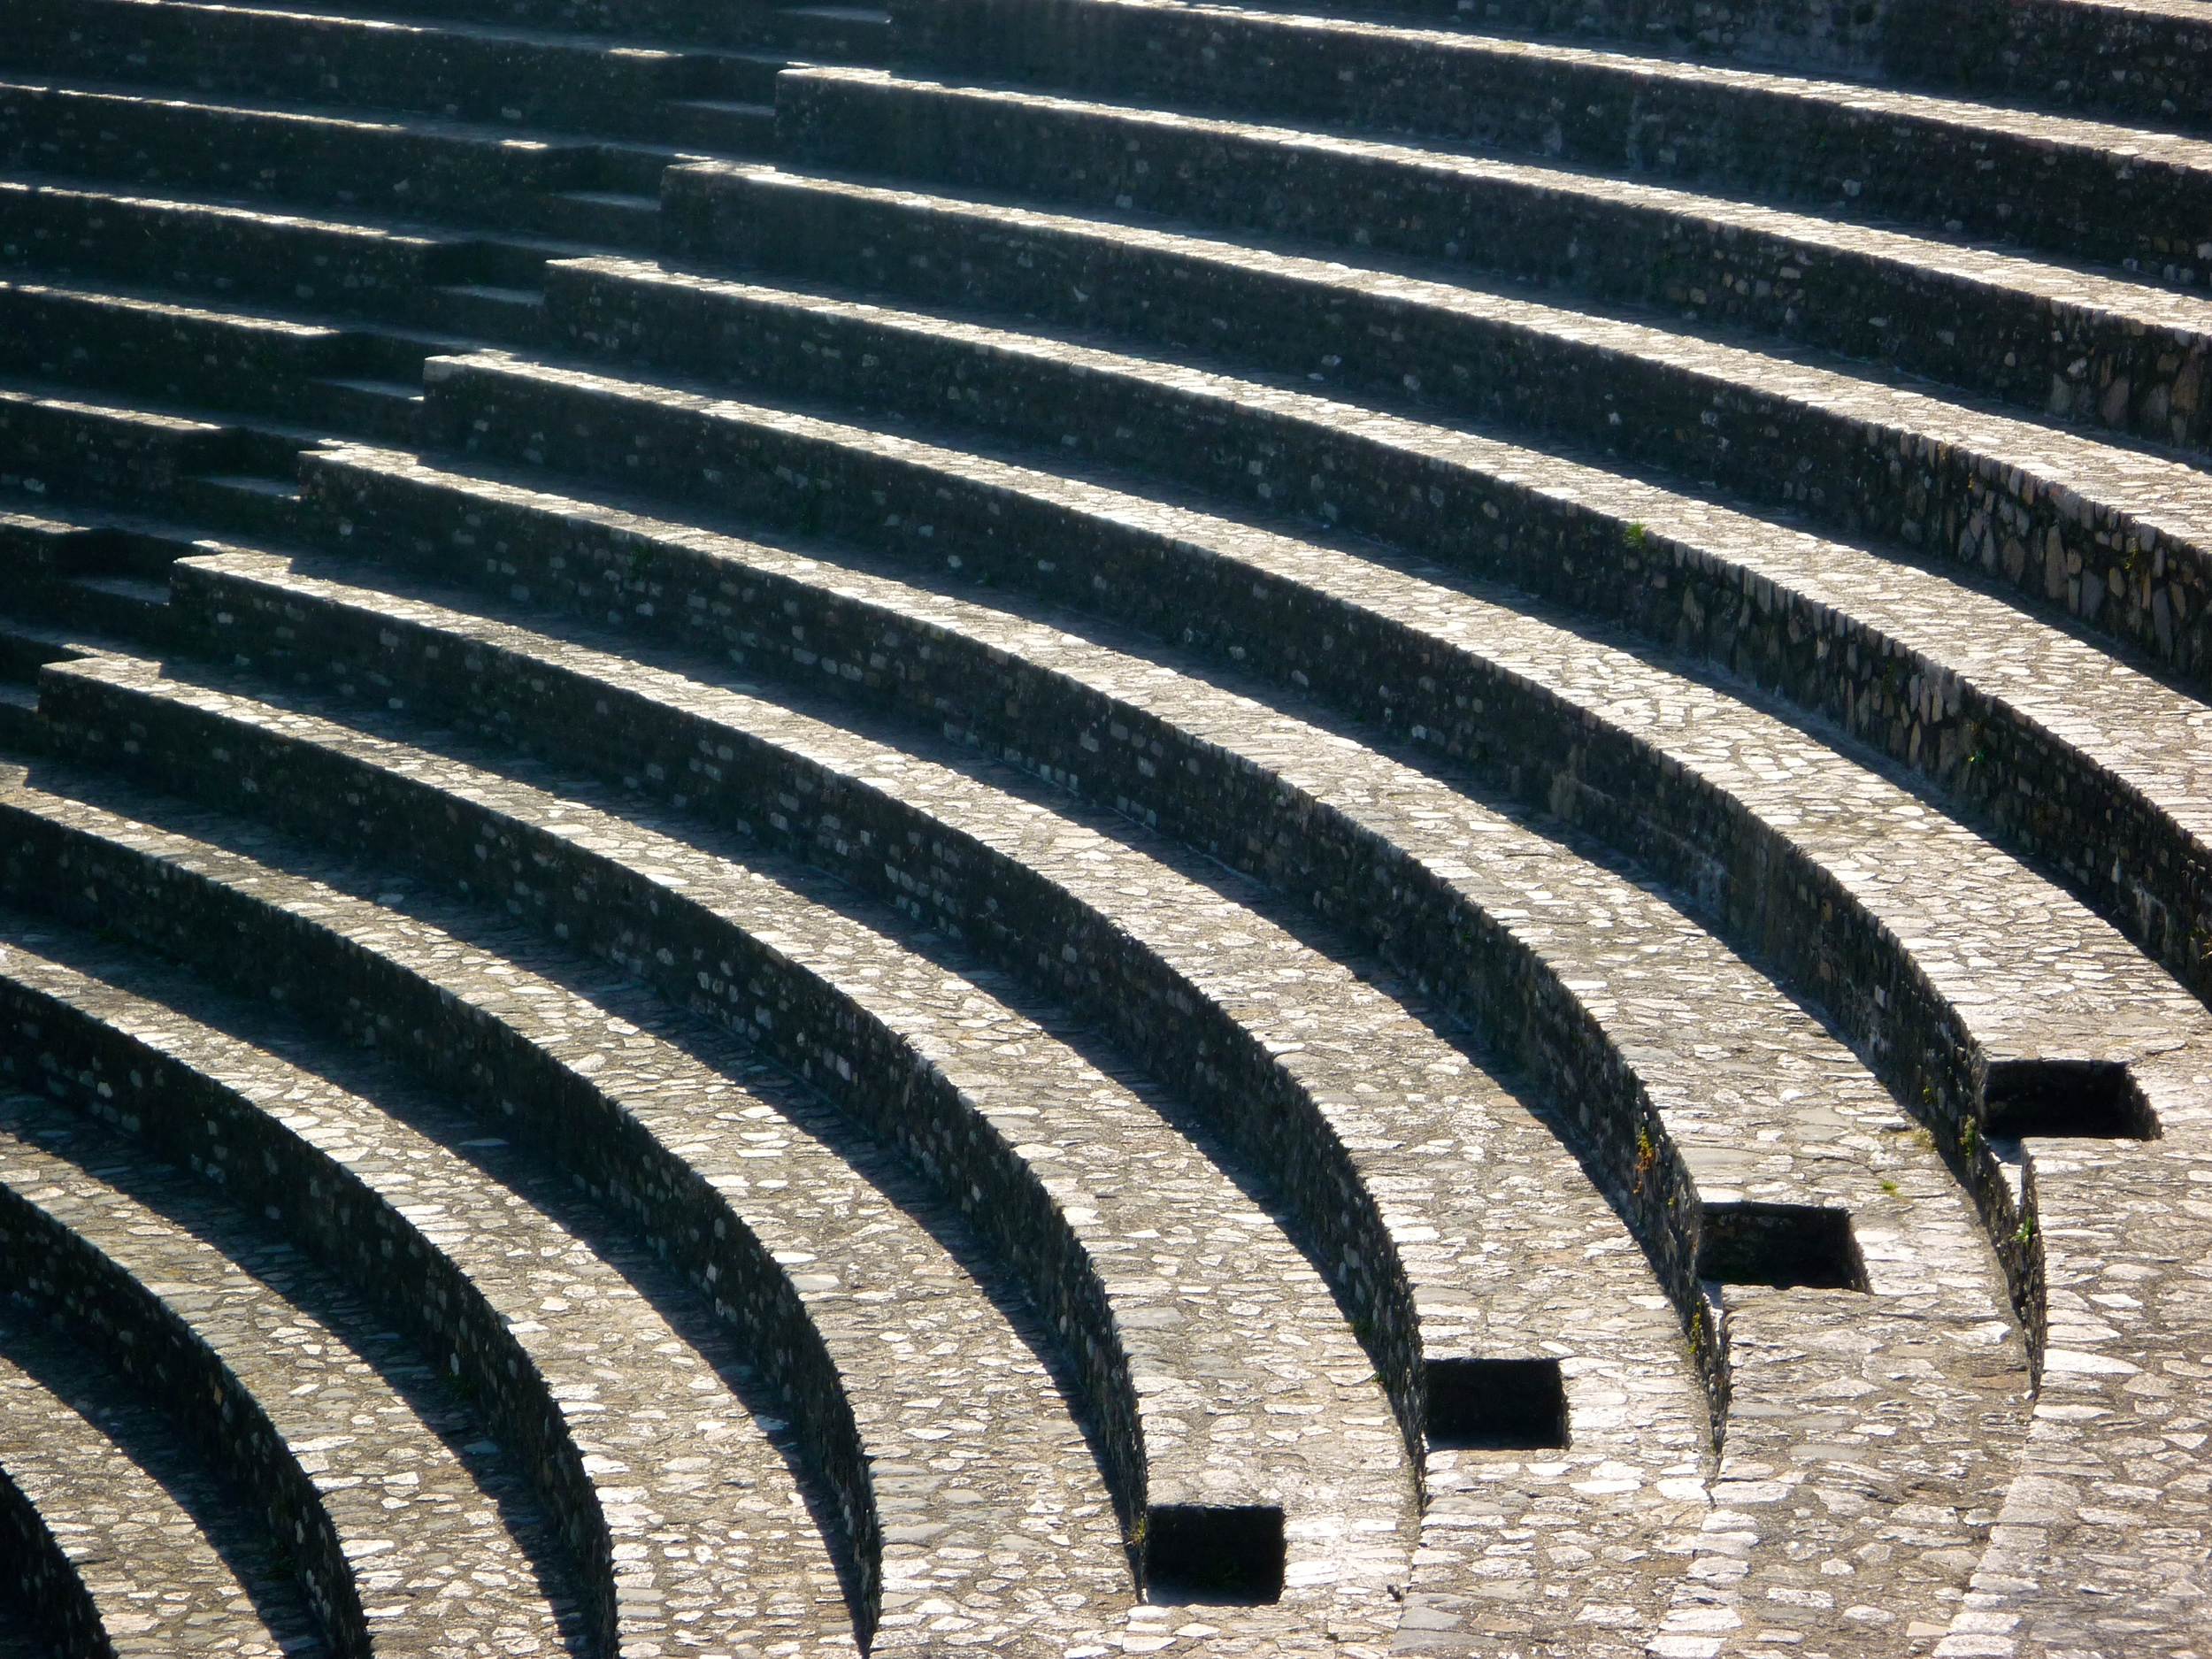 The (restored) steps of the Roman theatre